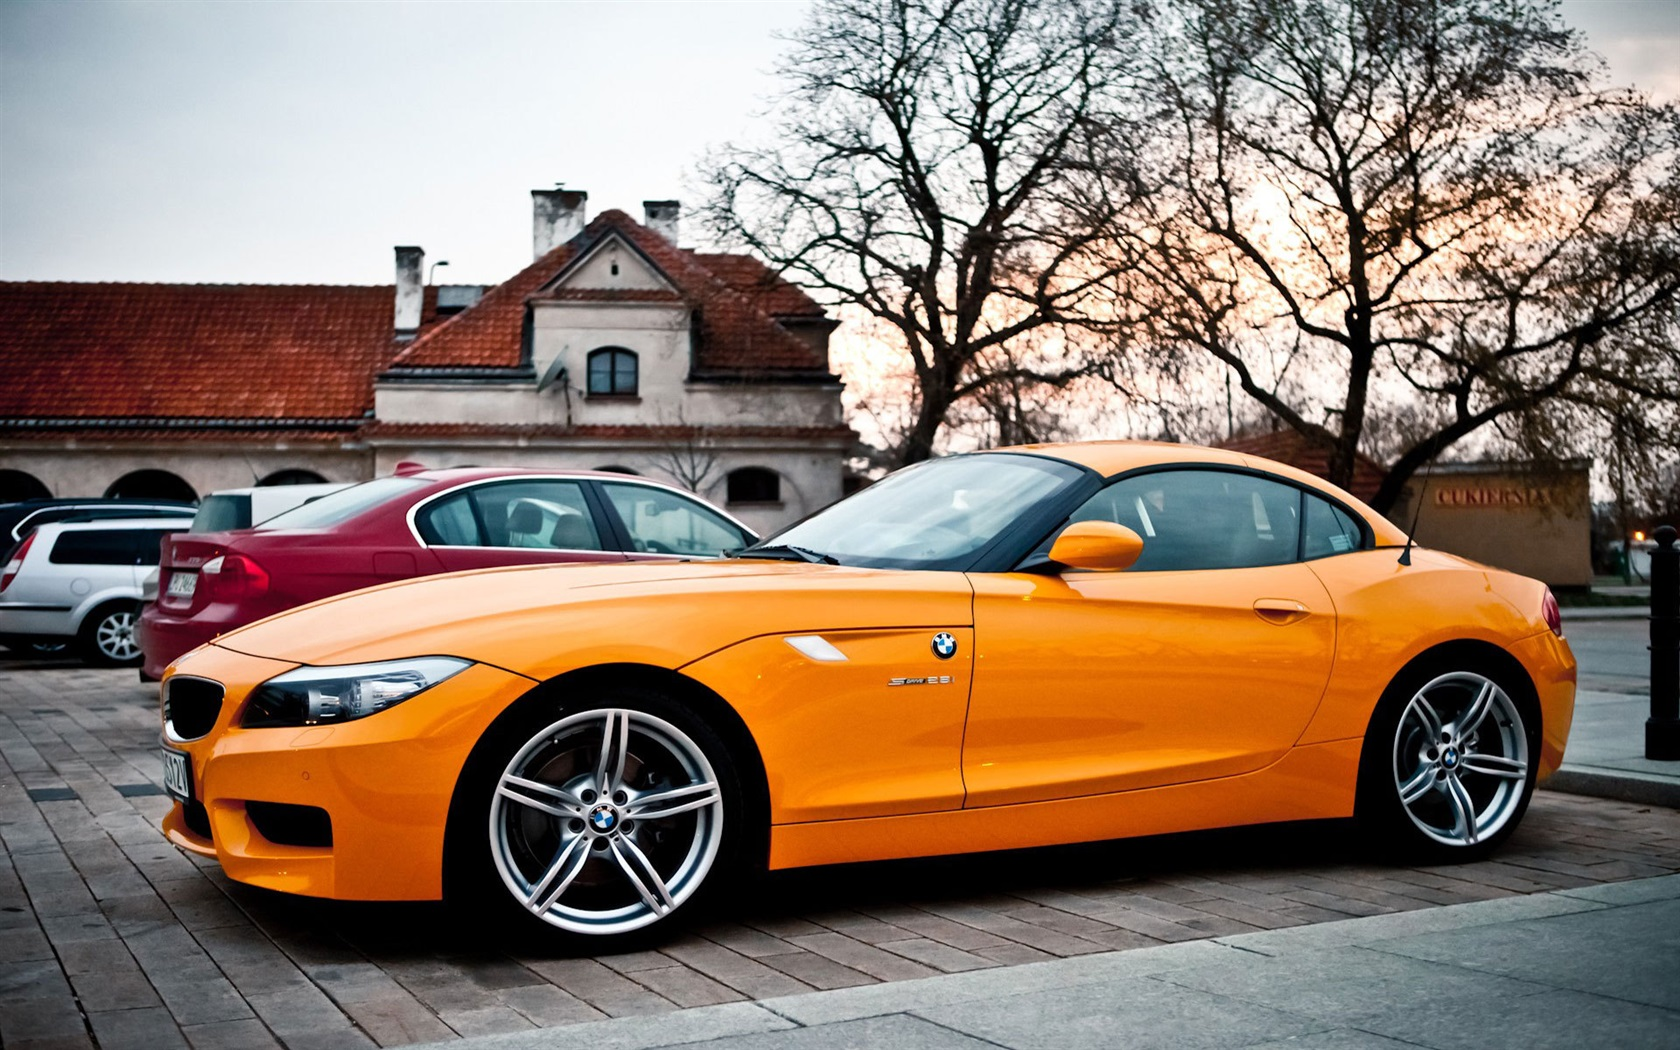 Red And White Car Wallpaper 1920x1080 Wallpaper Bmw Z4 Orange Car 1920x1200 Hd Picture Image